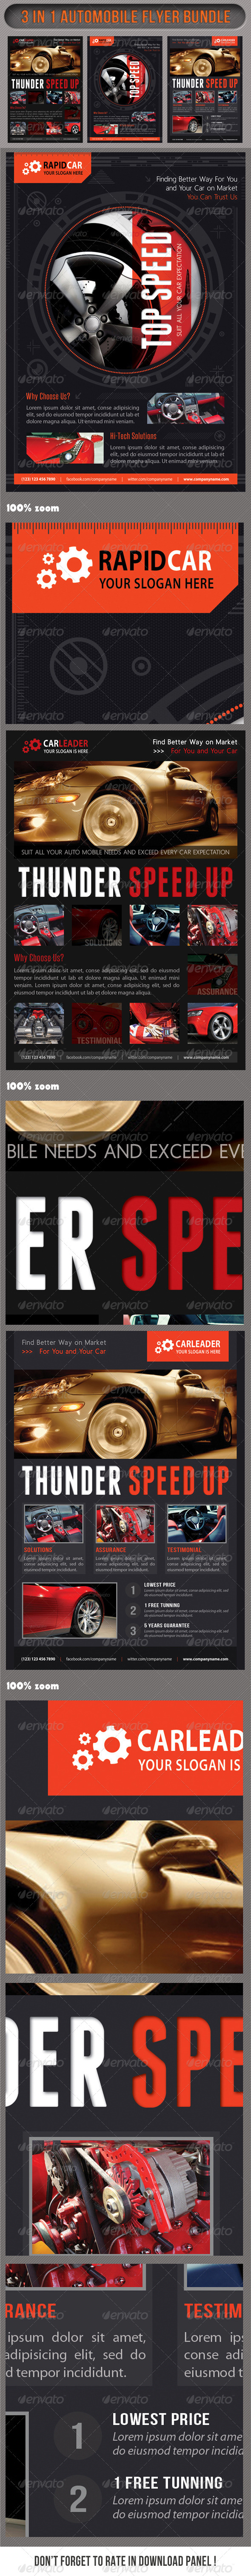 GraphicRiver 3 in 1 Auto Mobile Multipurpose Bundle 01 7564642